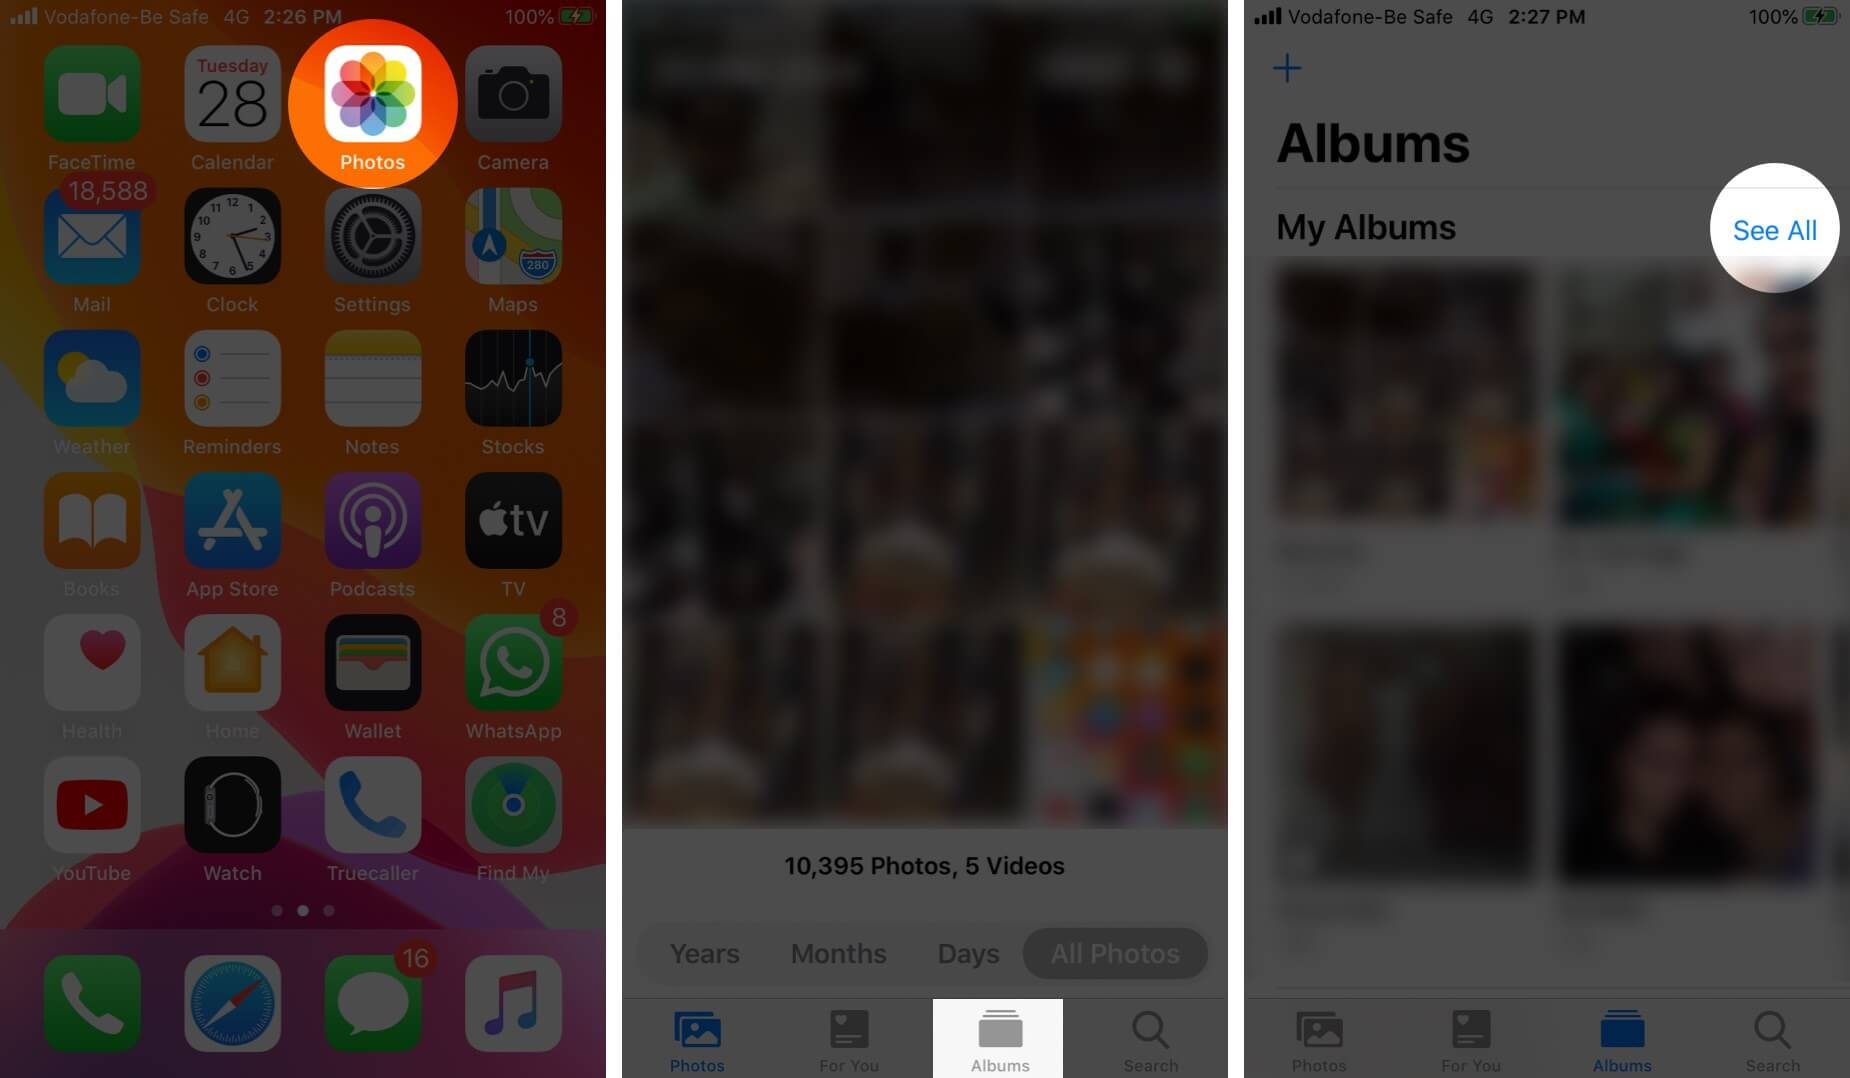 Open Photos App Tap on Albums and Then Tap on See All